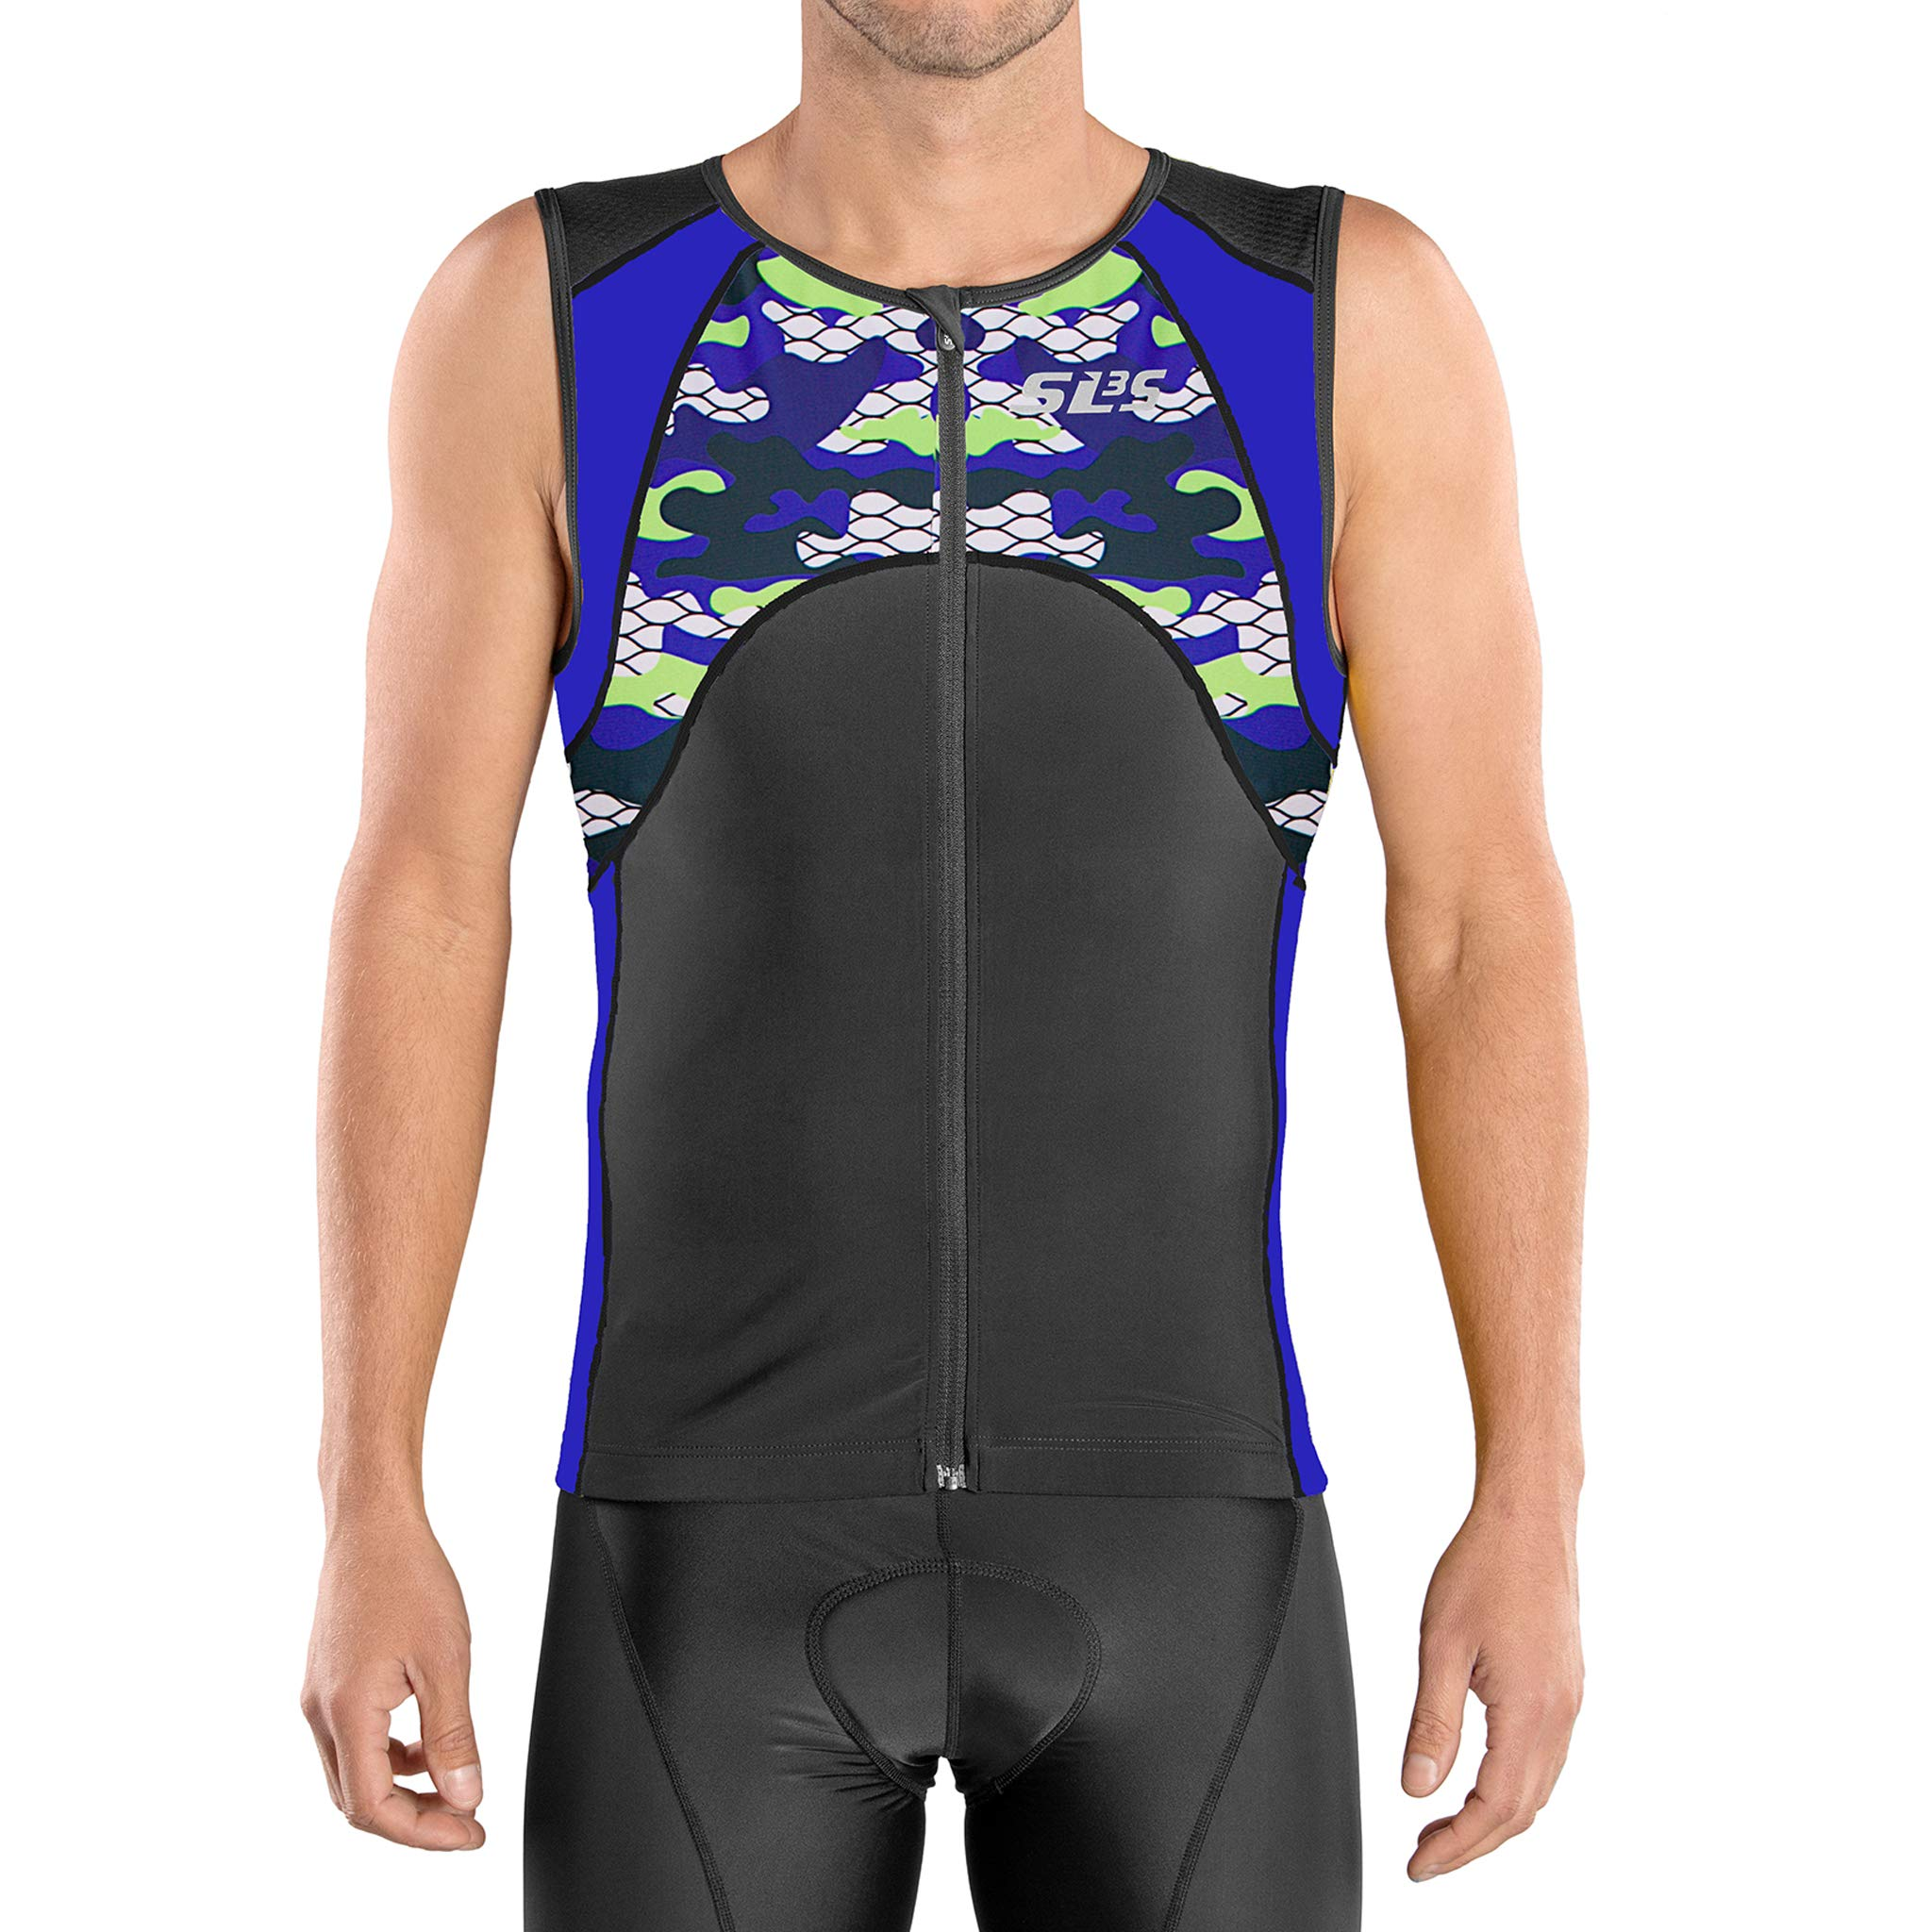 SLS3 Triathlon Men`s FX Tri Top | 3 Pockets | Full Zipper | Jersey | Singlet | Tank | Shirt | German Designed (Black/Blue Camo, S)